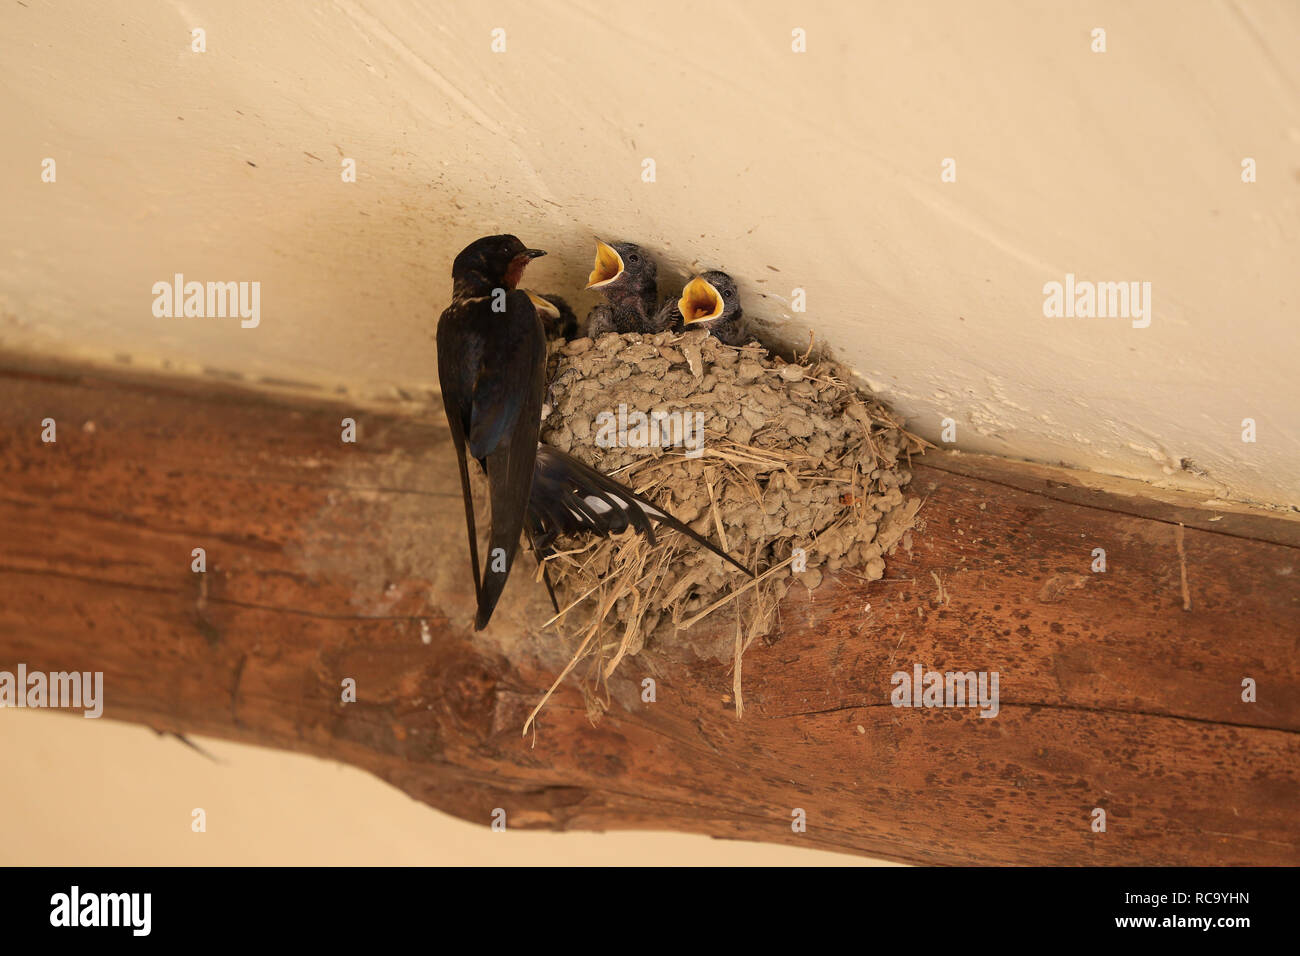 Tiny, baby, Swallow chicks with open mouths (beaks) in nest being fed by parent. - Stock Image